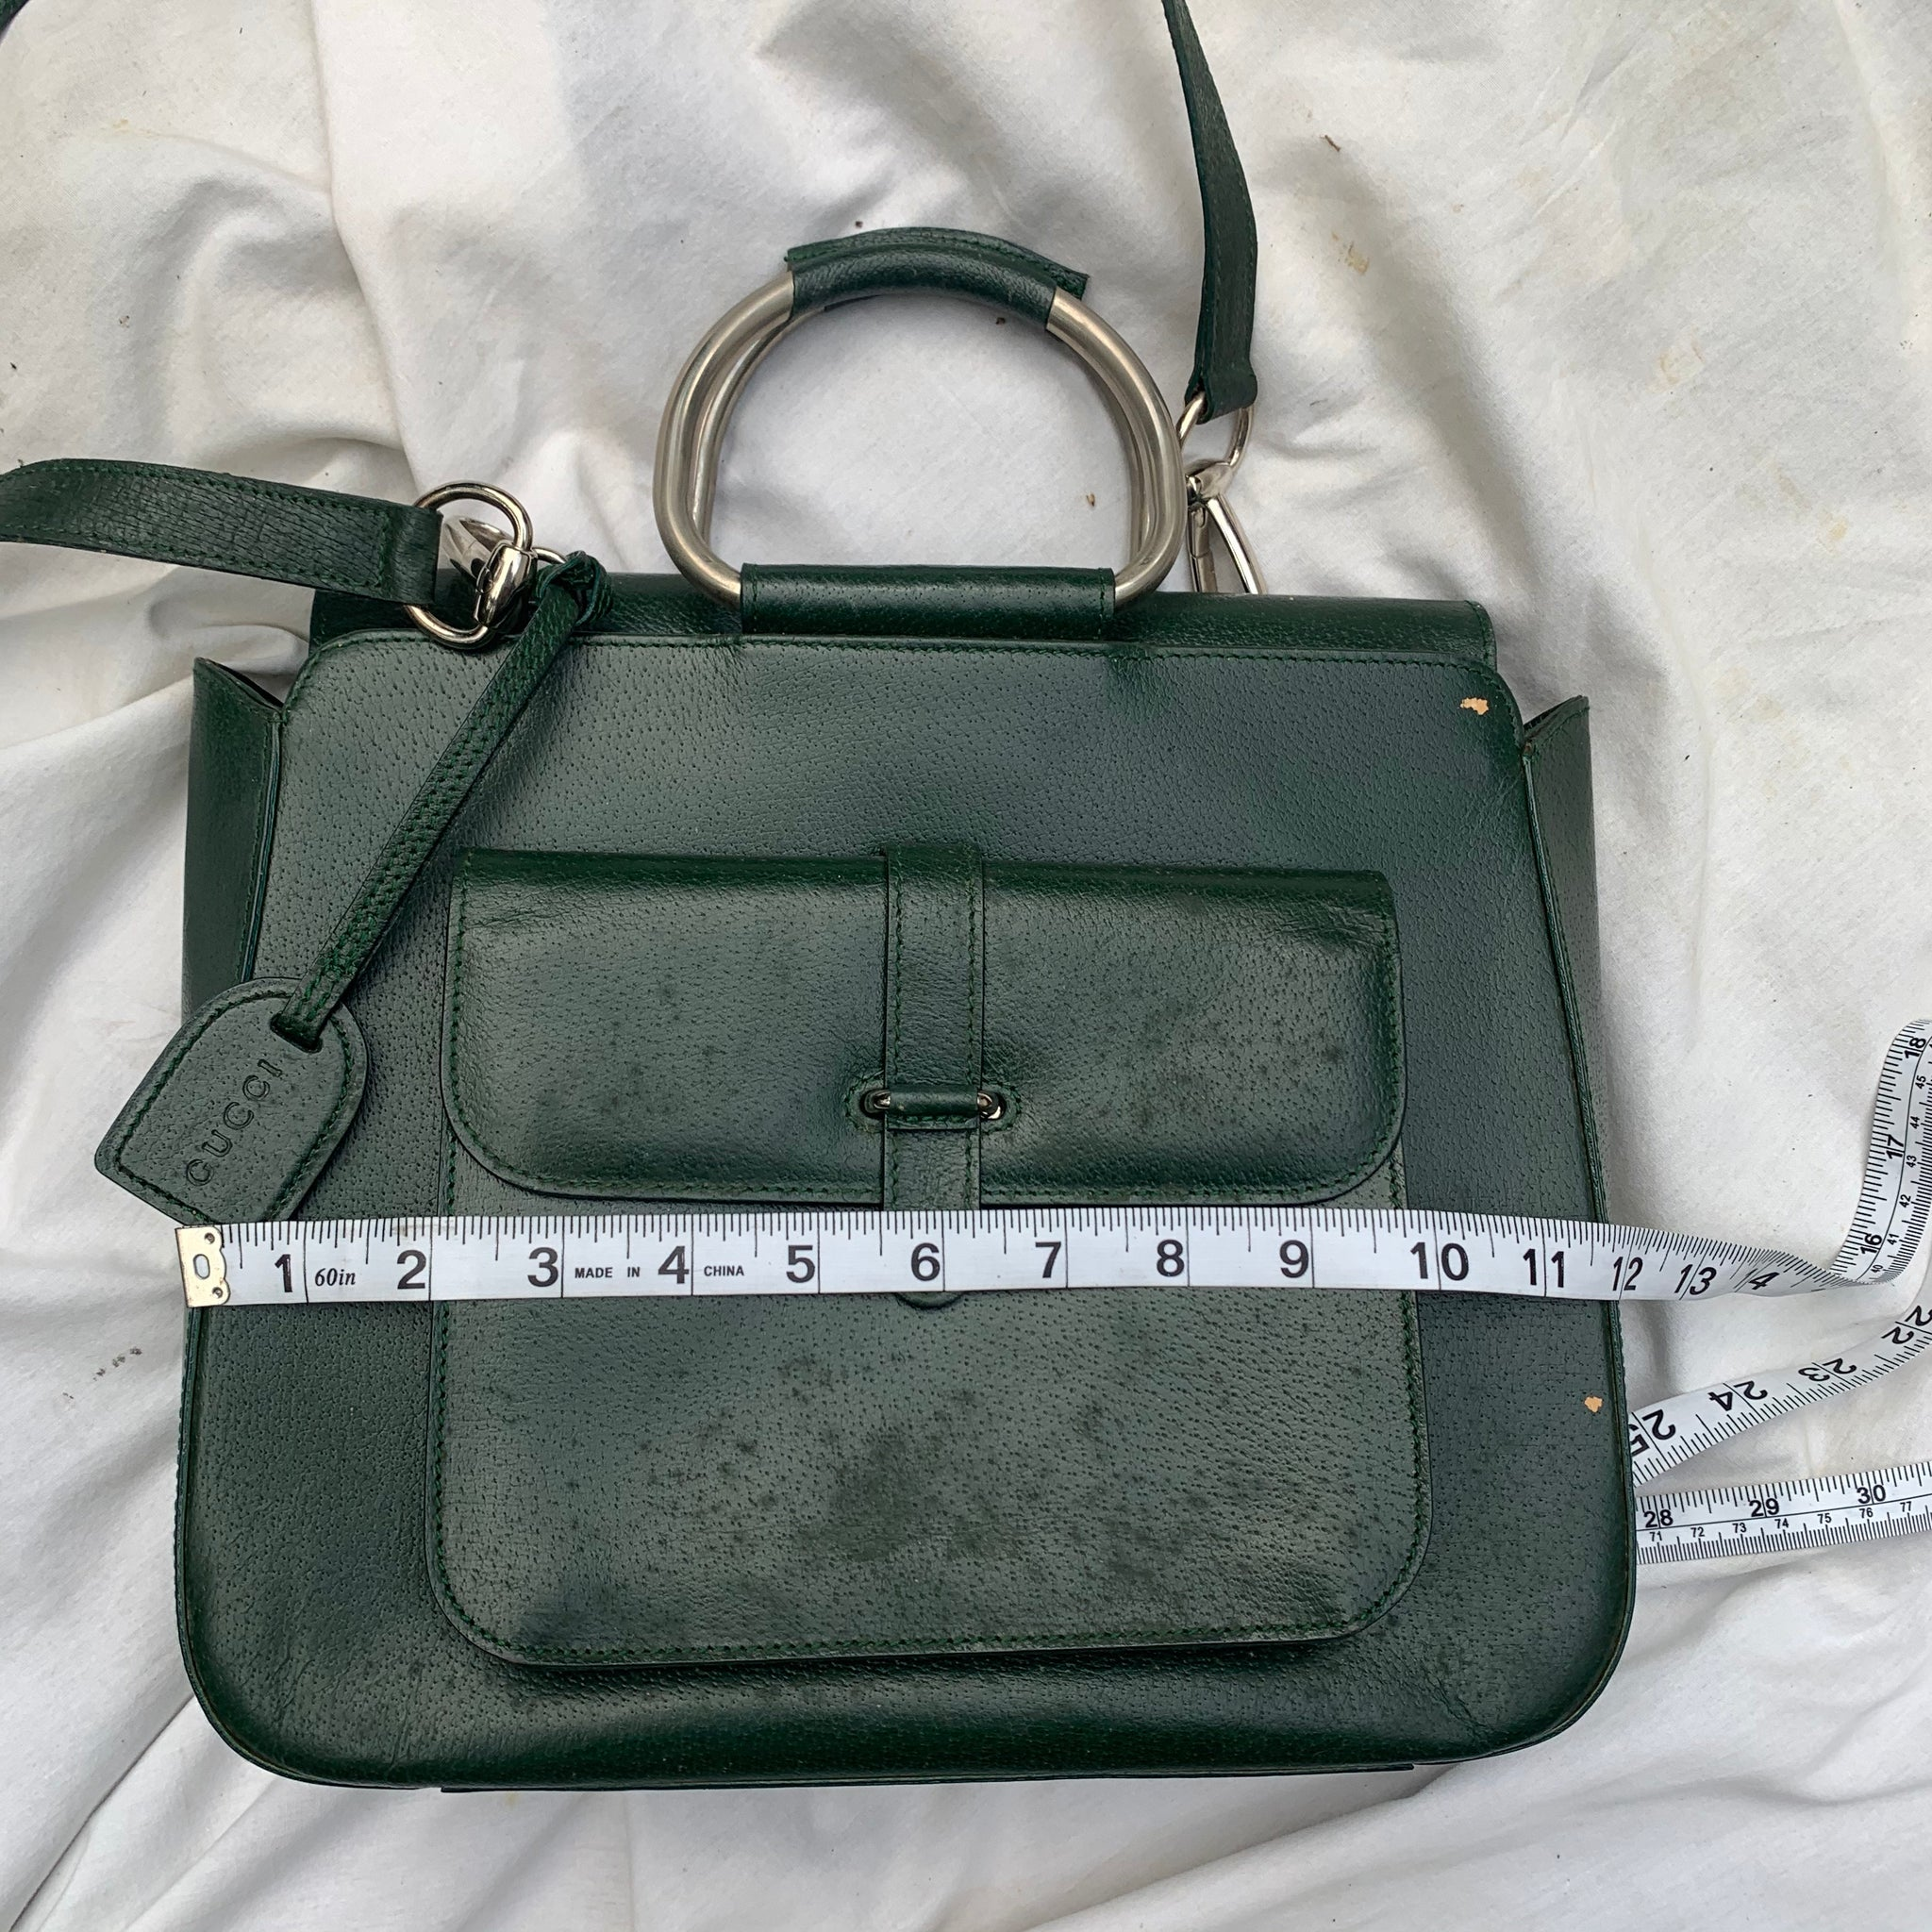 Green Vintage Gucci Satchel Bag W/ Strap - Shop Vanilla Vintage